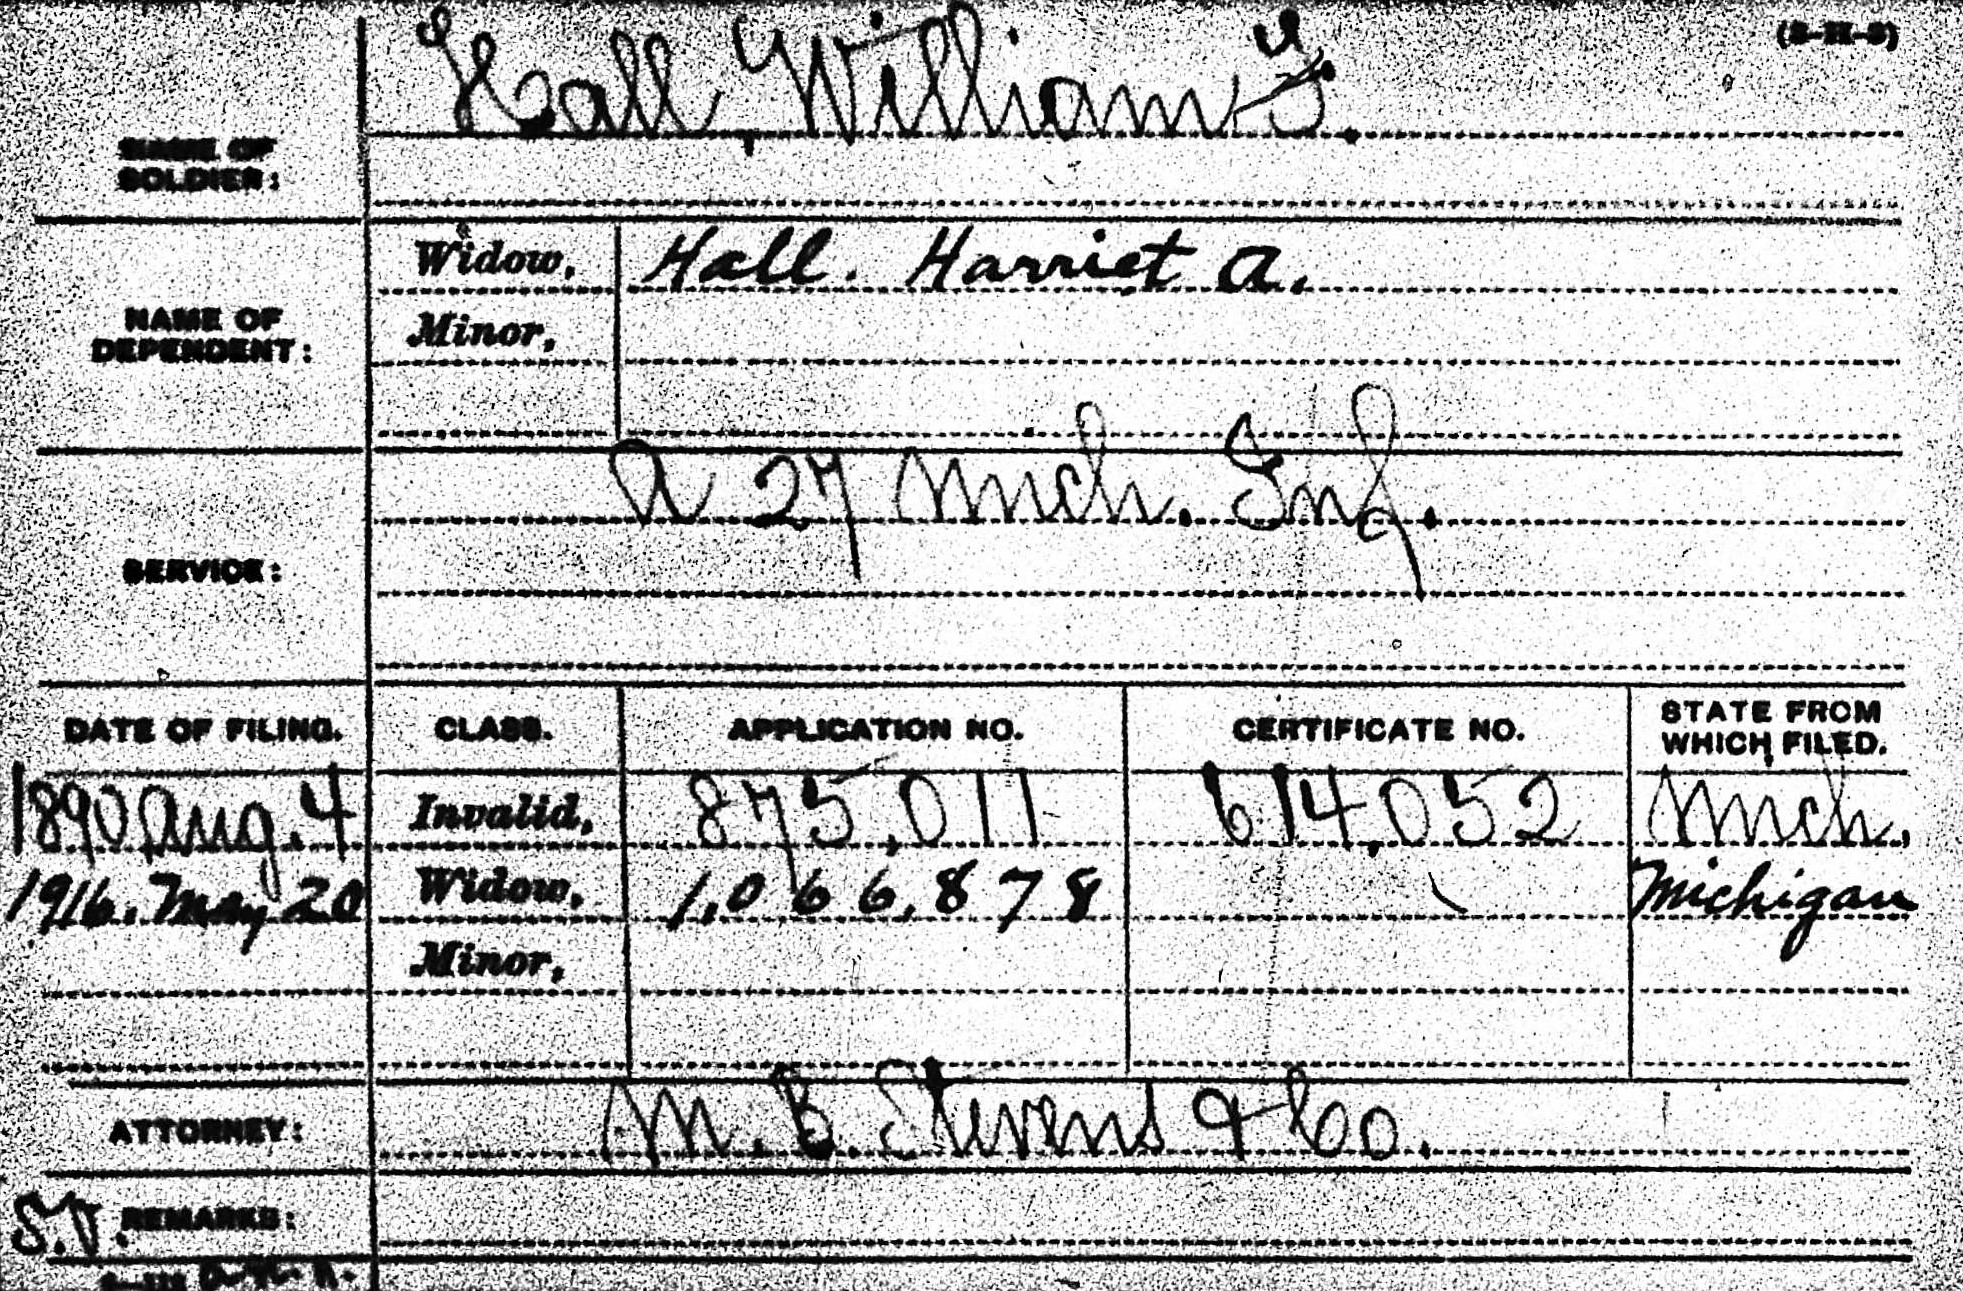 Pension record for William Hall.